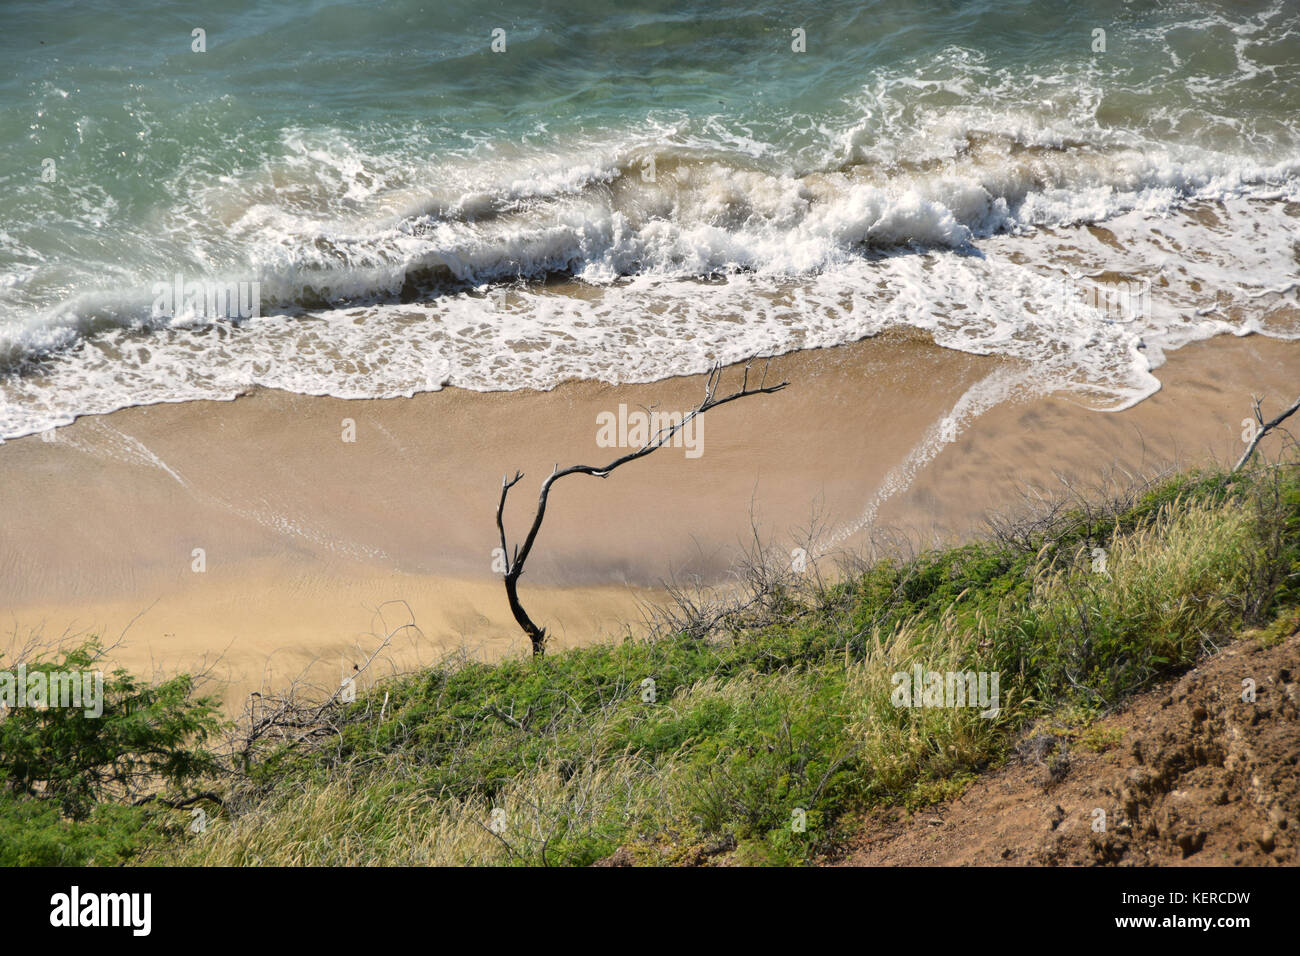 Beachfront overlook - Oahu, Hawaii - Stock Image